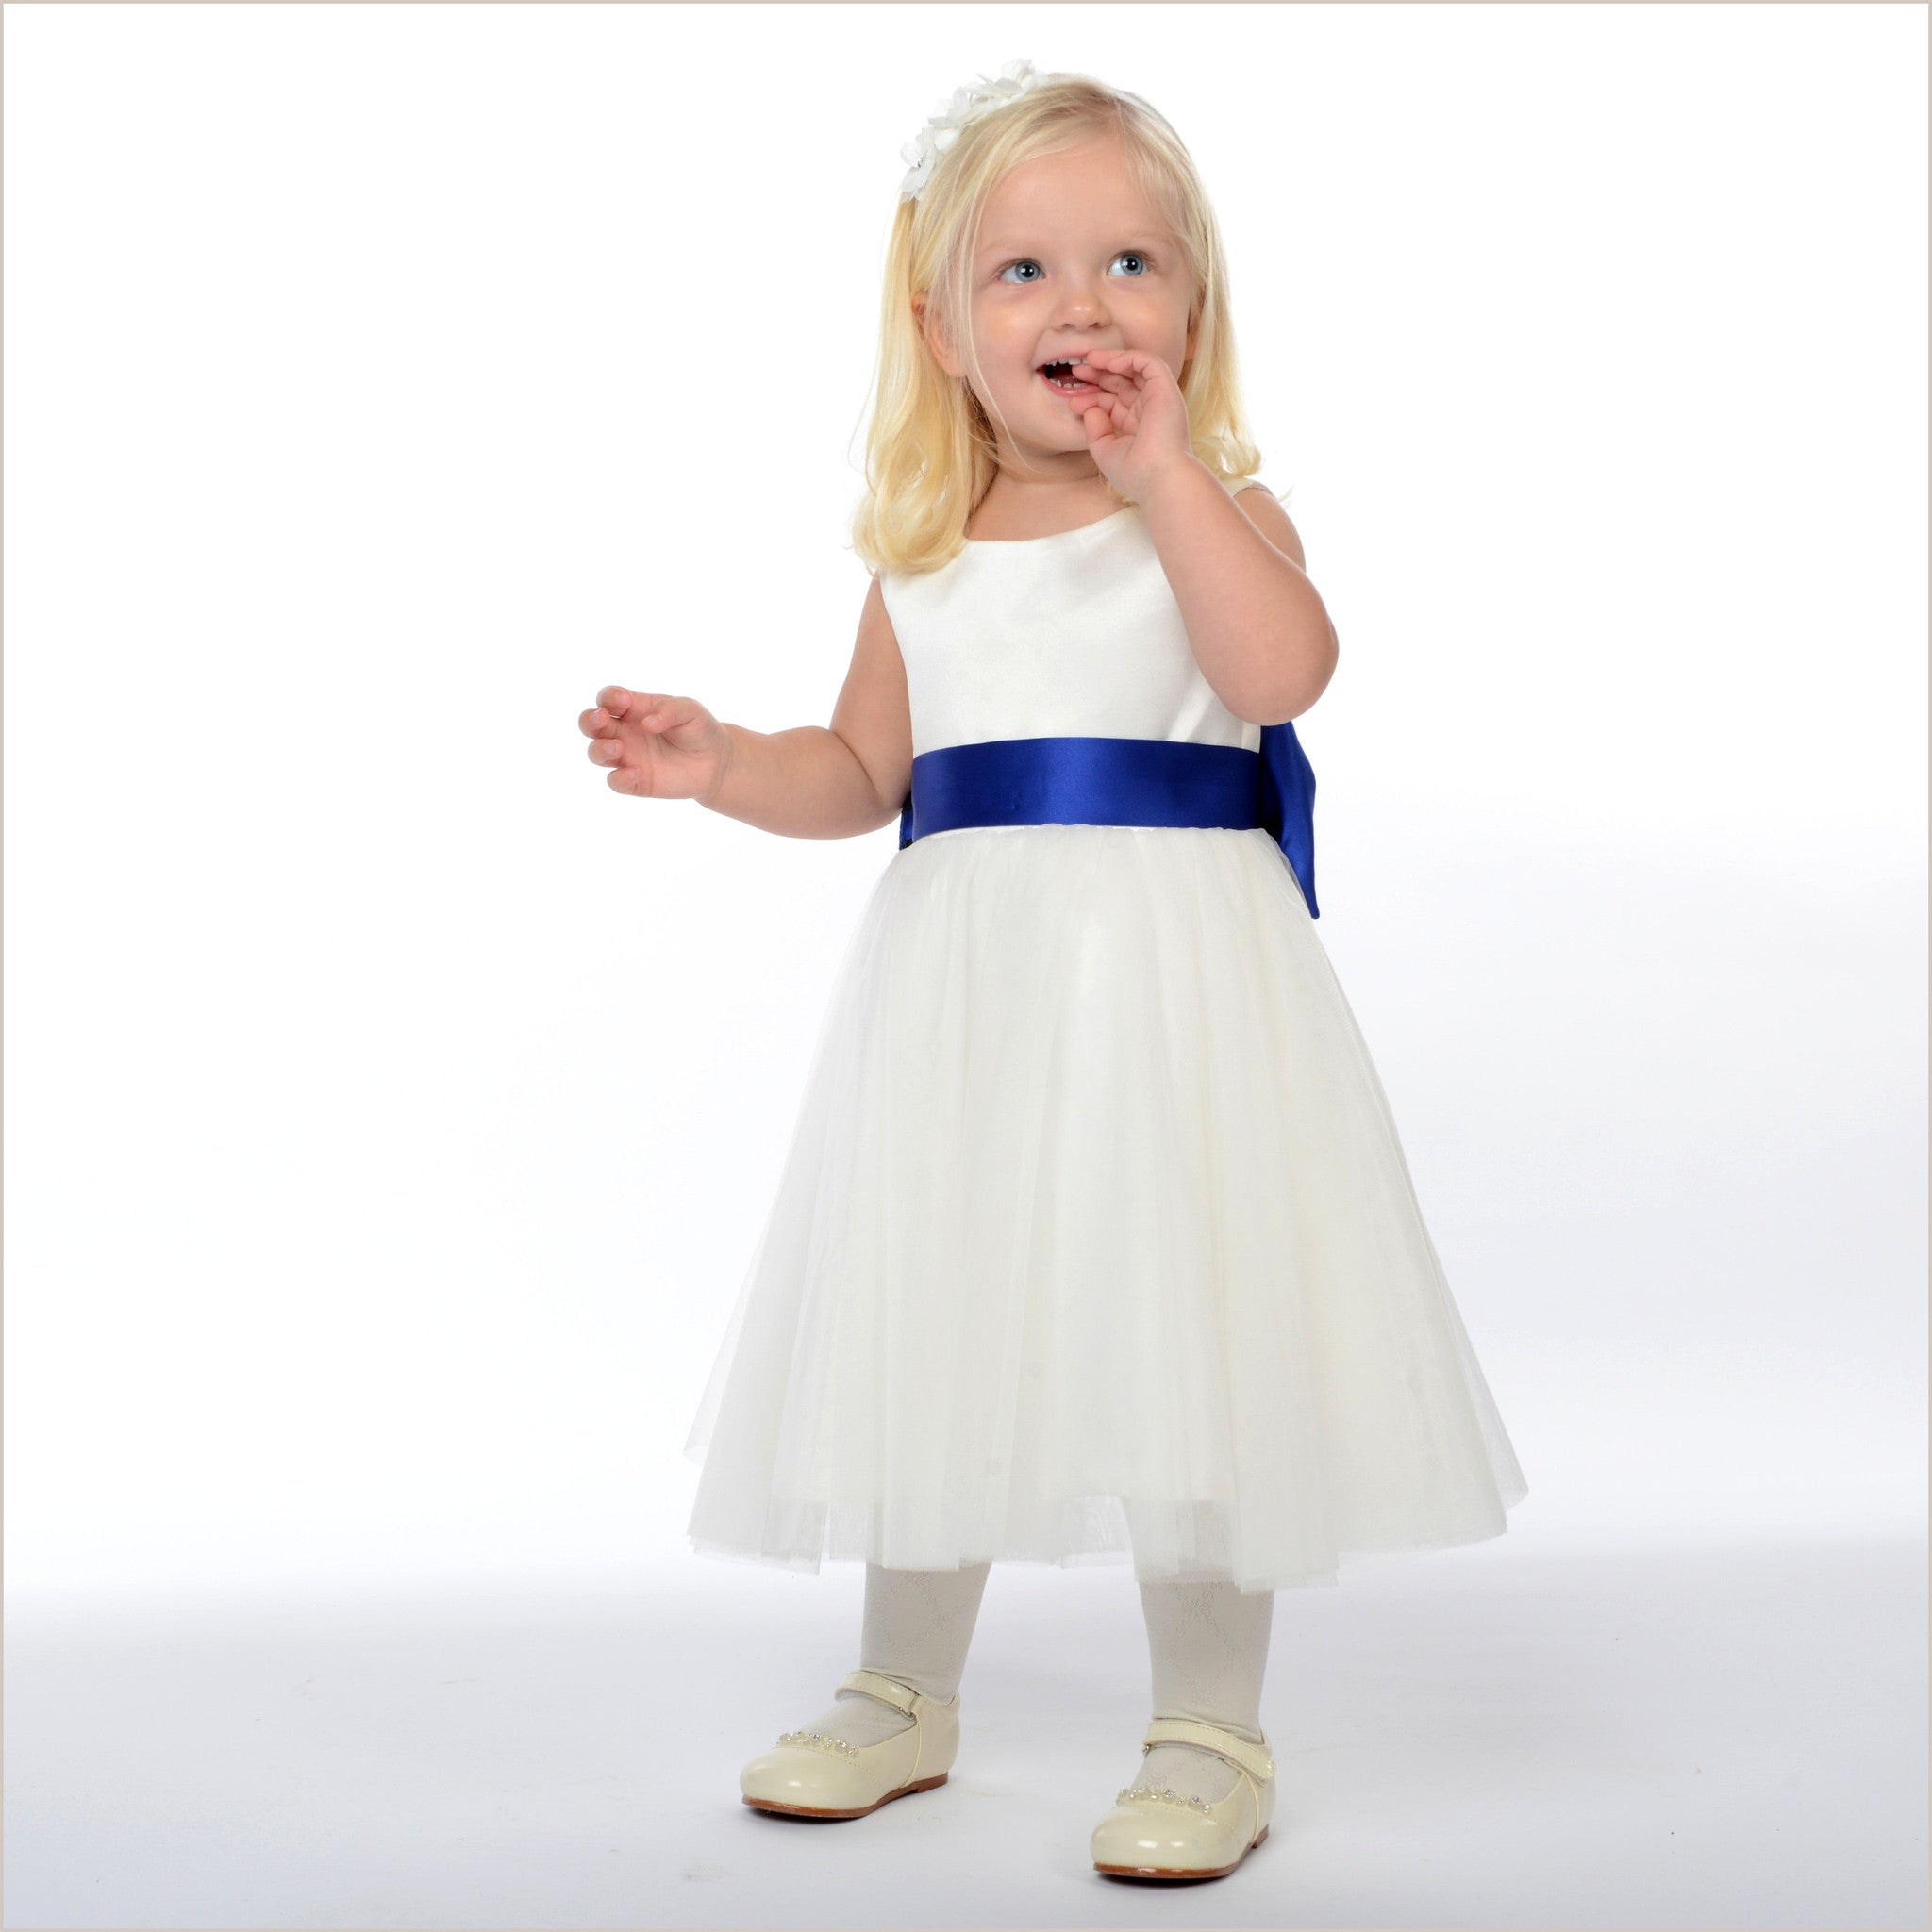 Ivory flower girl dress olivia also with plus size flower girl dresses olivia perfect ivory flower girl dress also in plus sizes izmirmasajfo